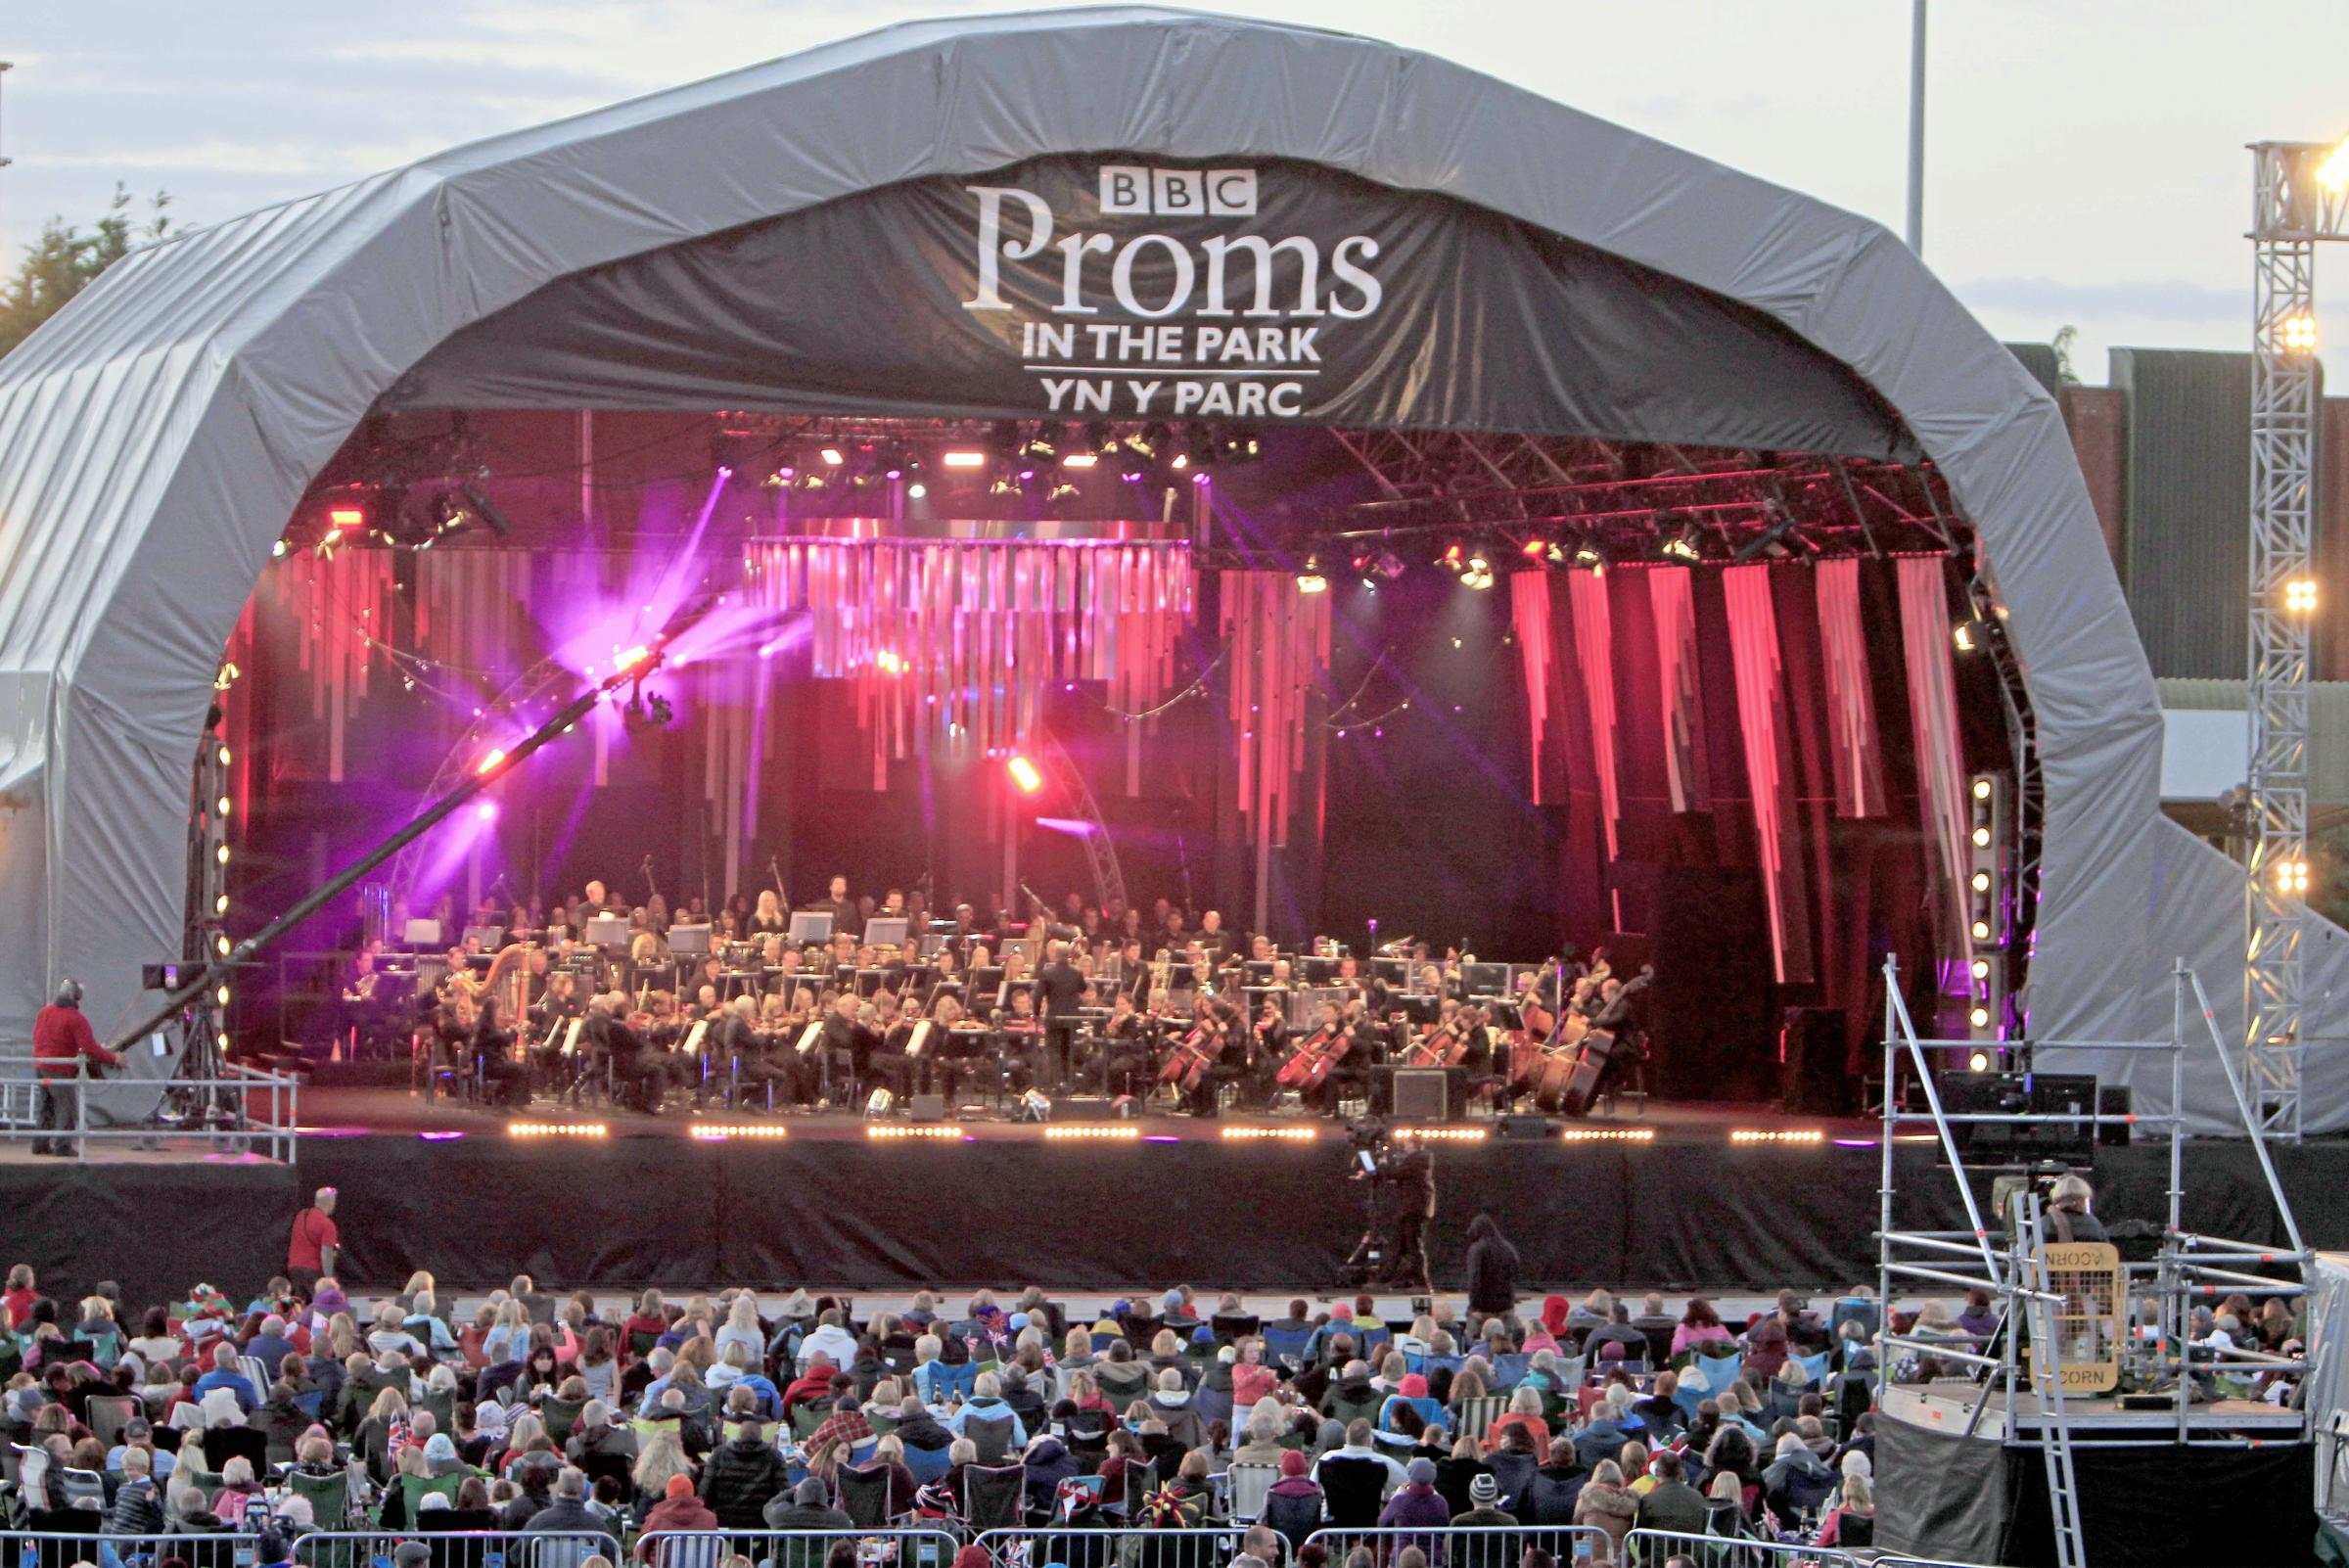 BBC's Proms in the Park to return to Colwyn Bay